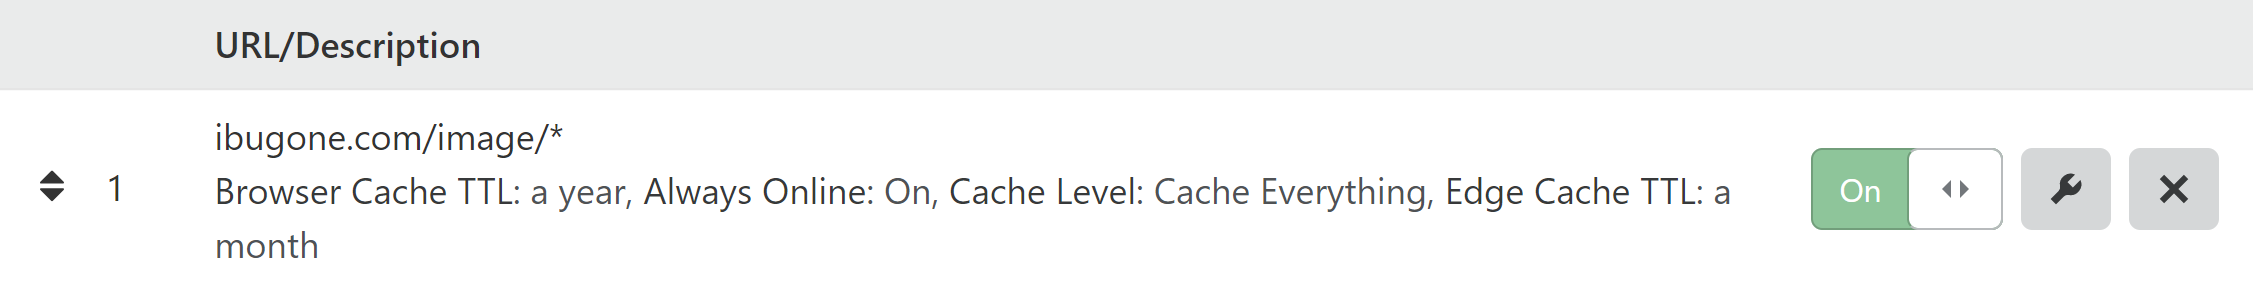 My Cloudflare setting for image caching